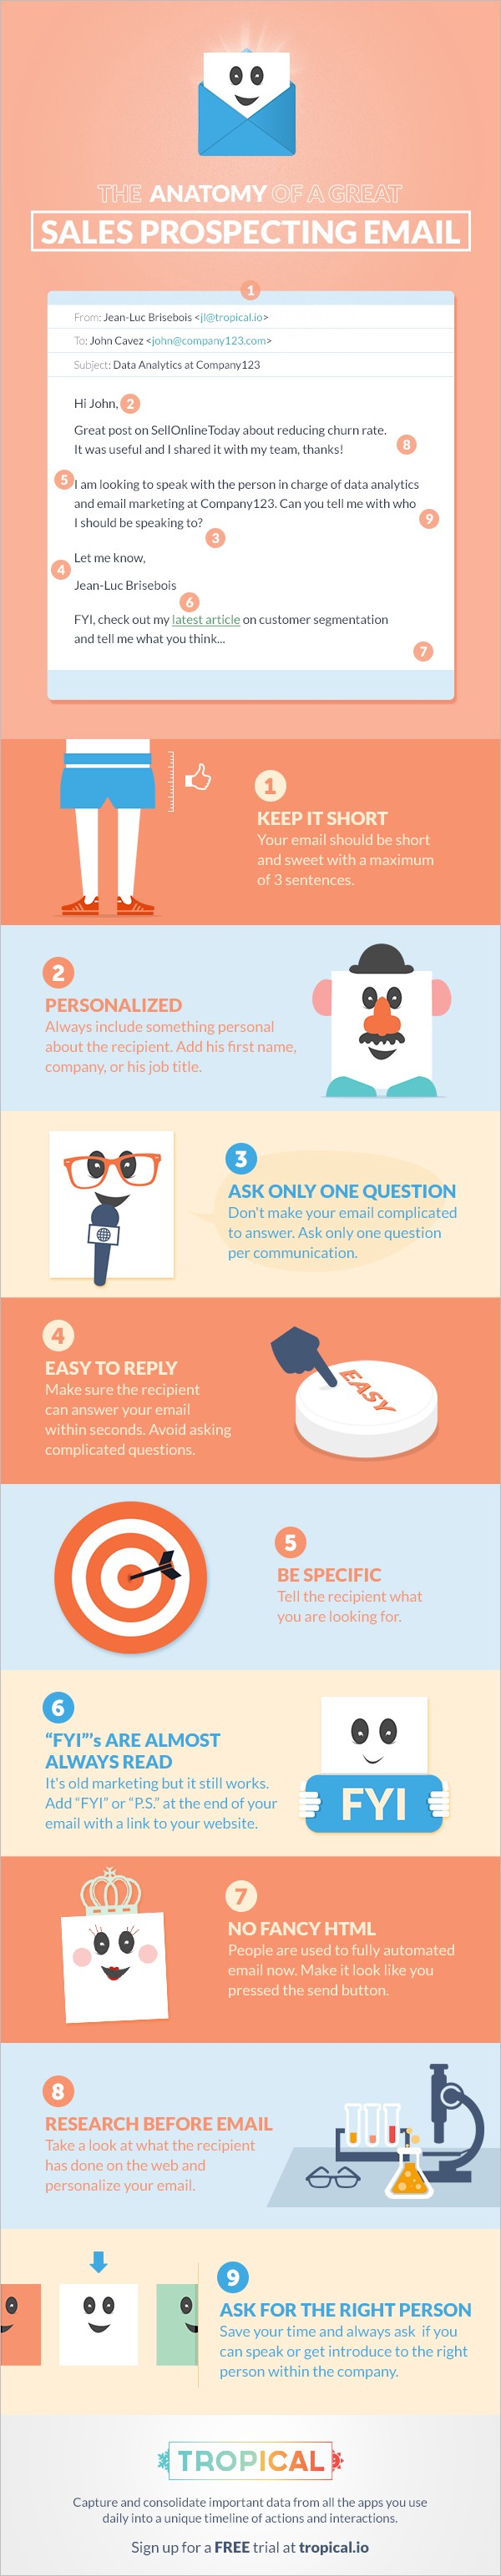 The Anatomy Of A Great Sales Prospecting Email [Infographic]